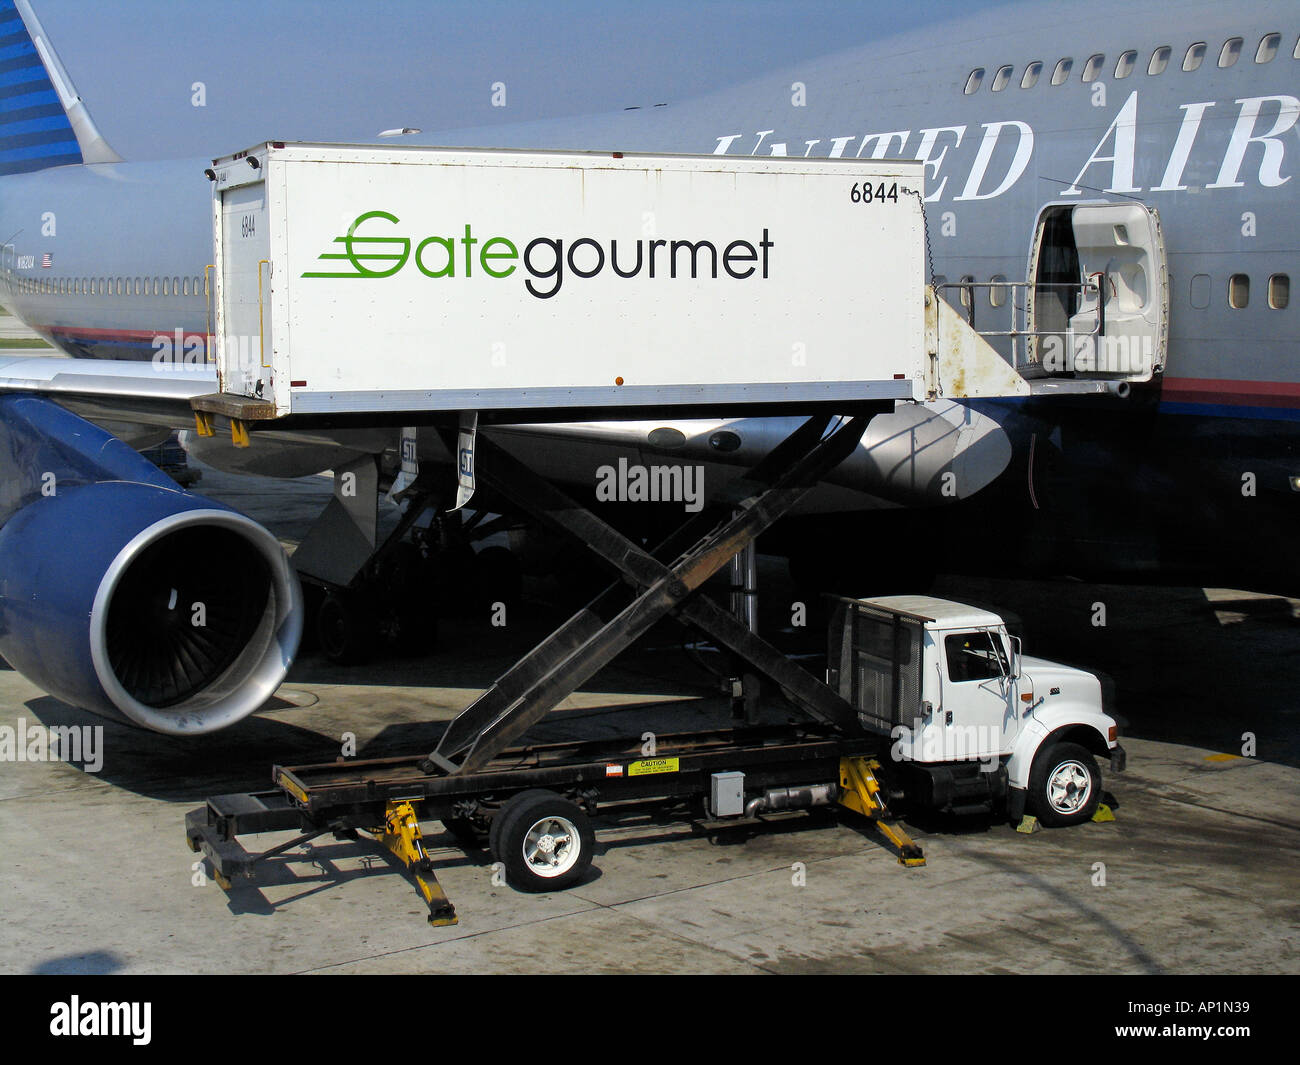 Catering truck loads United Airlines Boeing 747-400 OHare